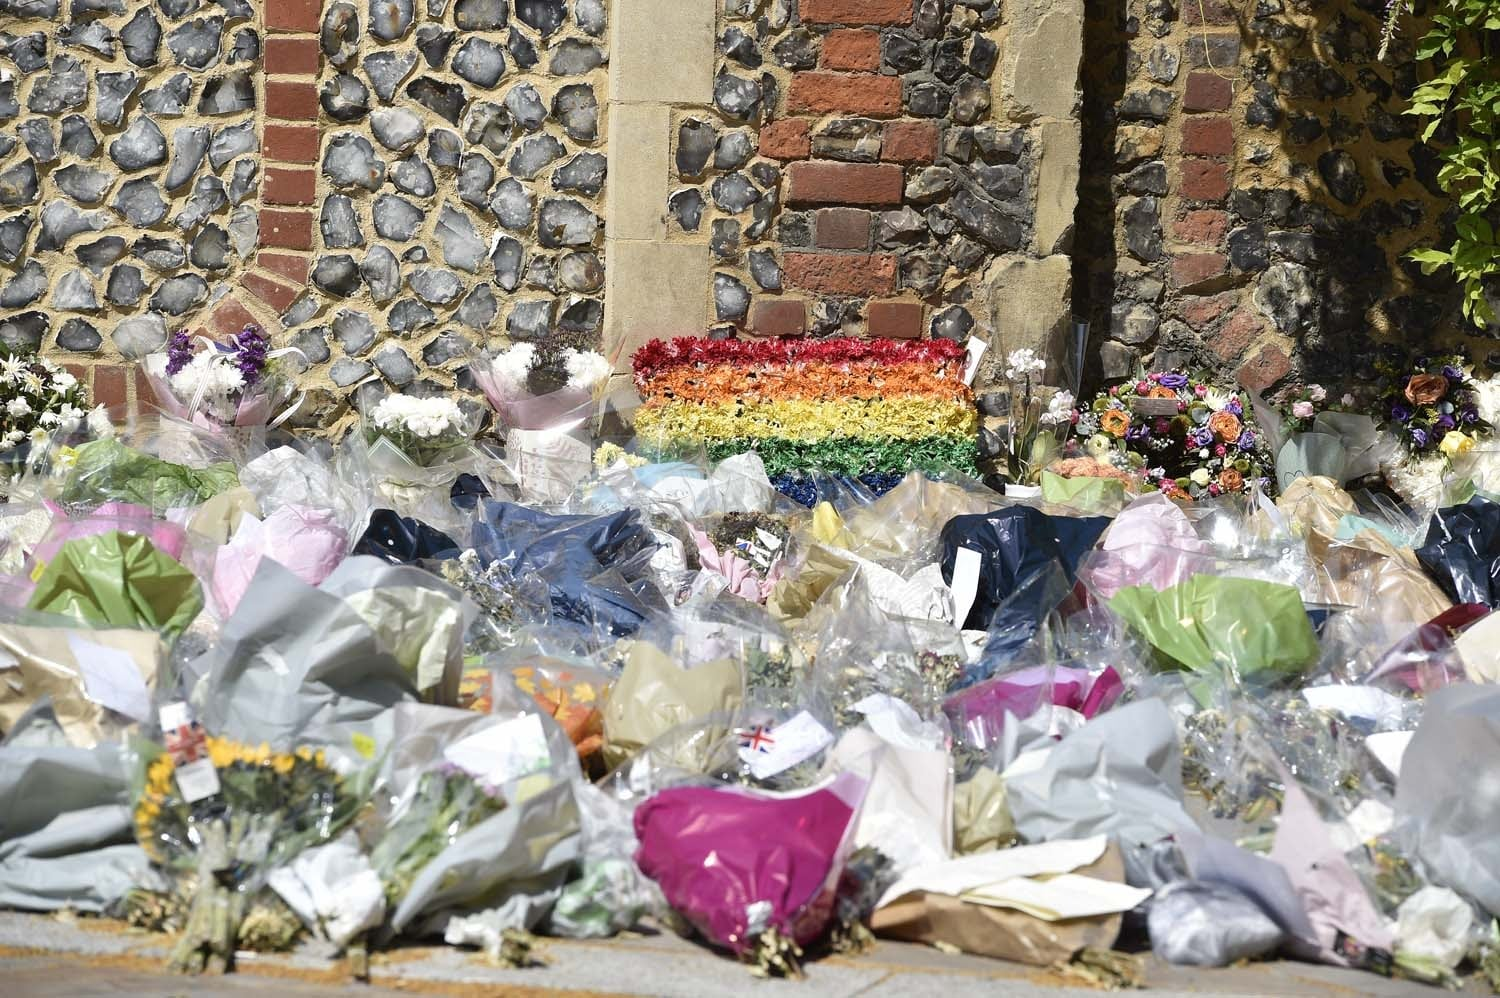 The city's LGBT+ community was devastated by the news that three of its own had been murdered in the attack